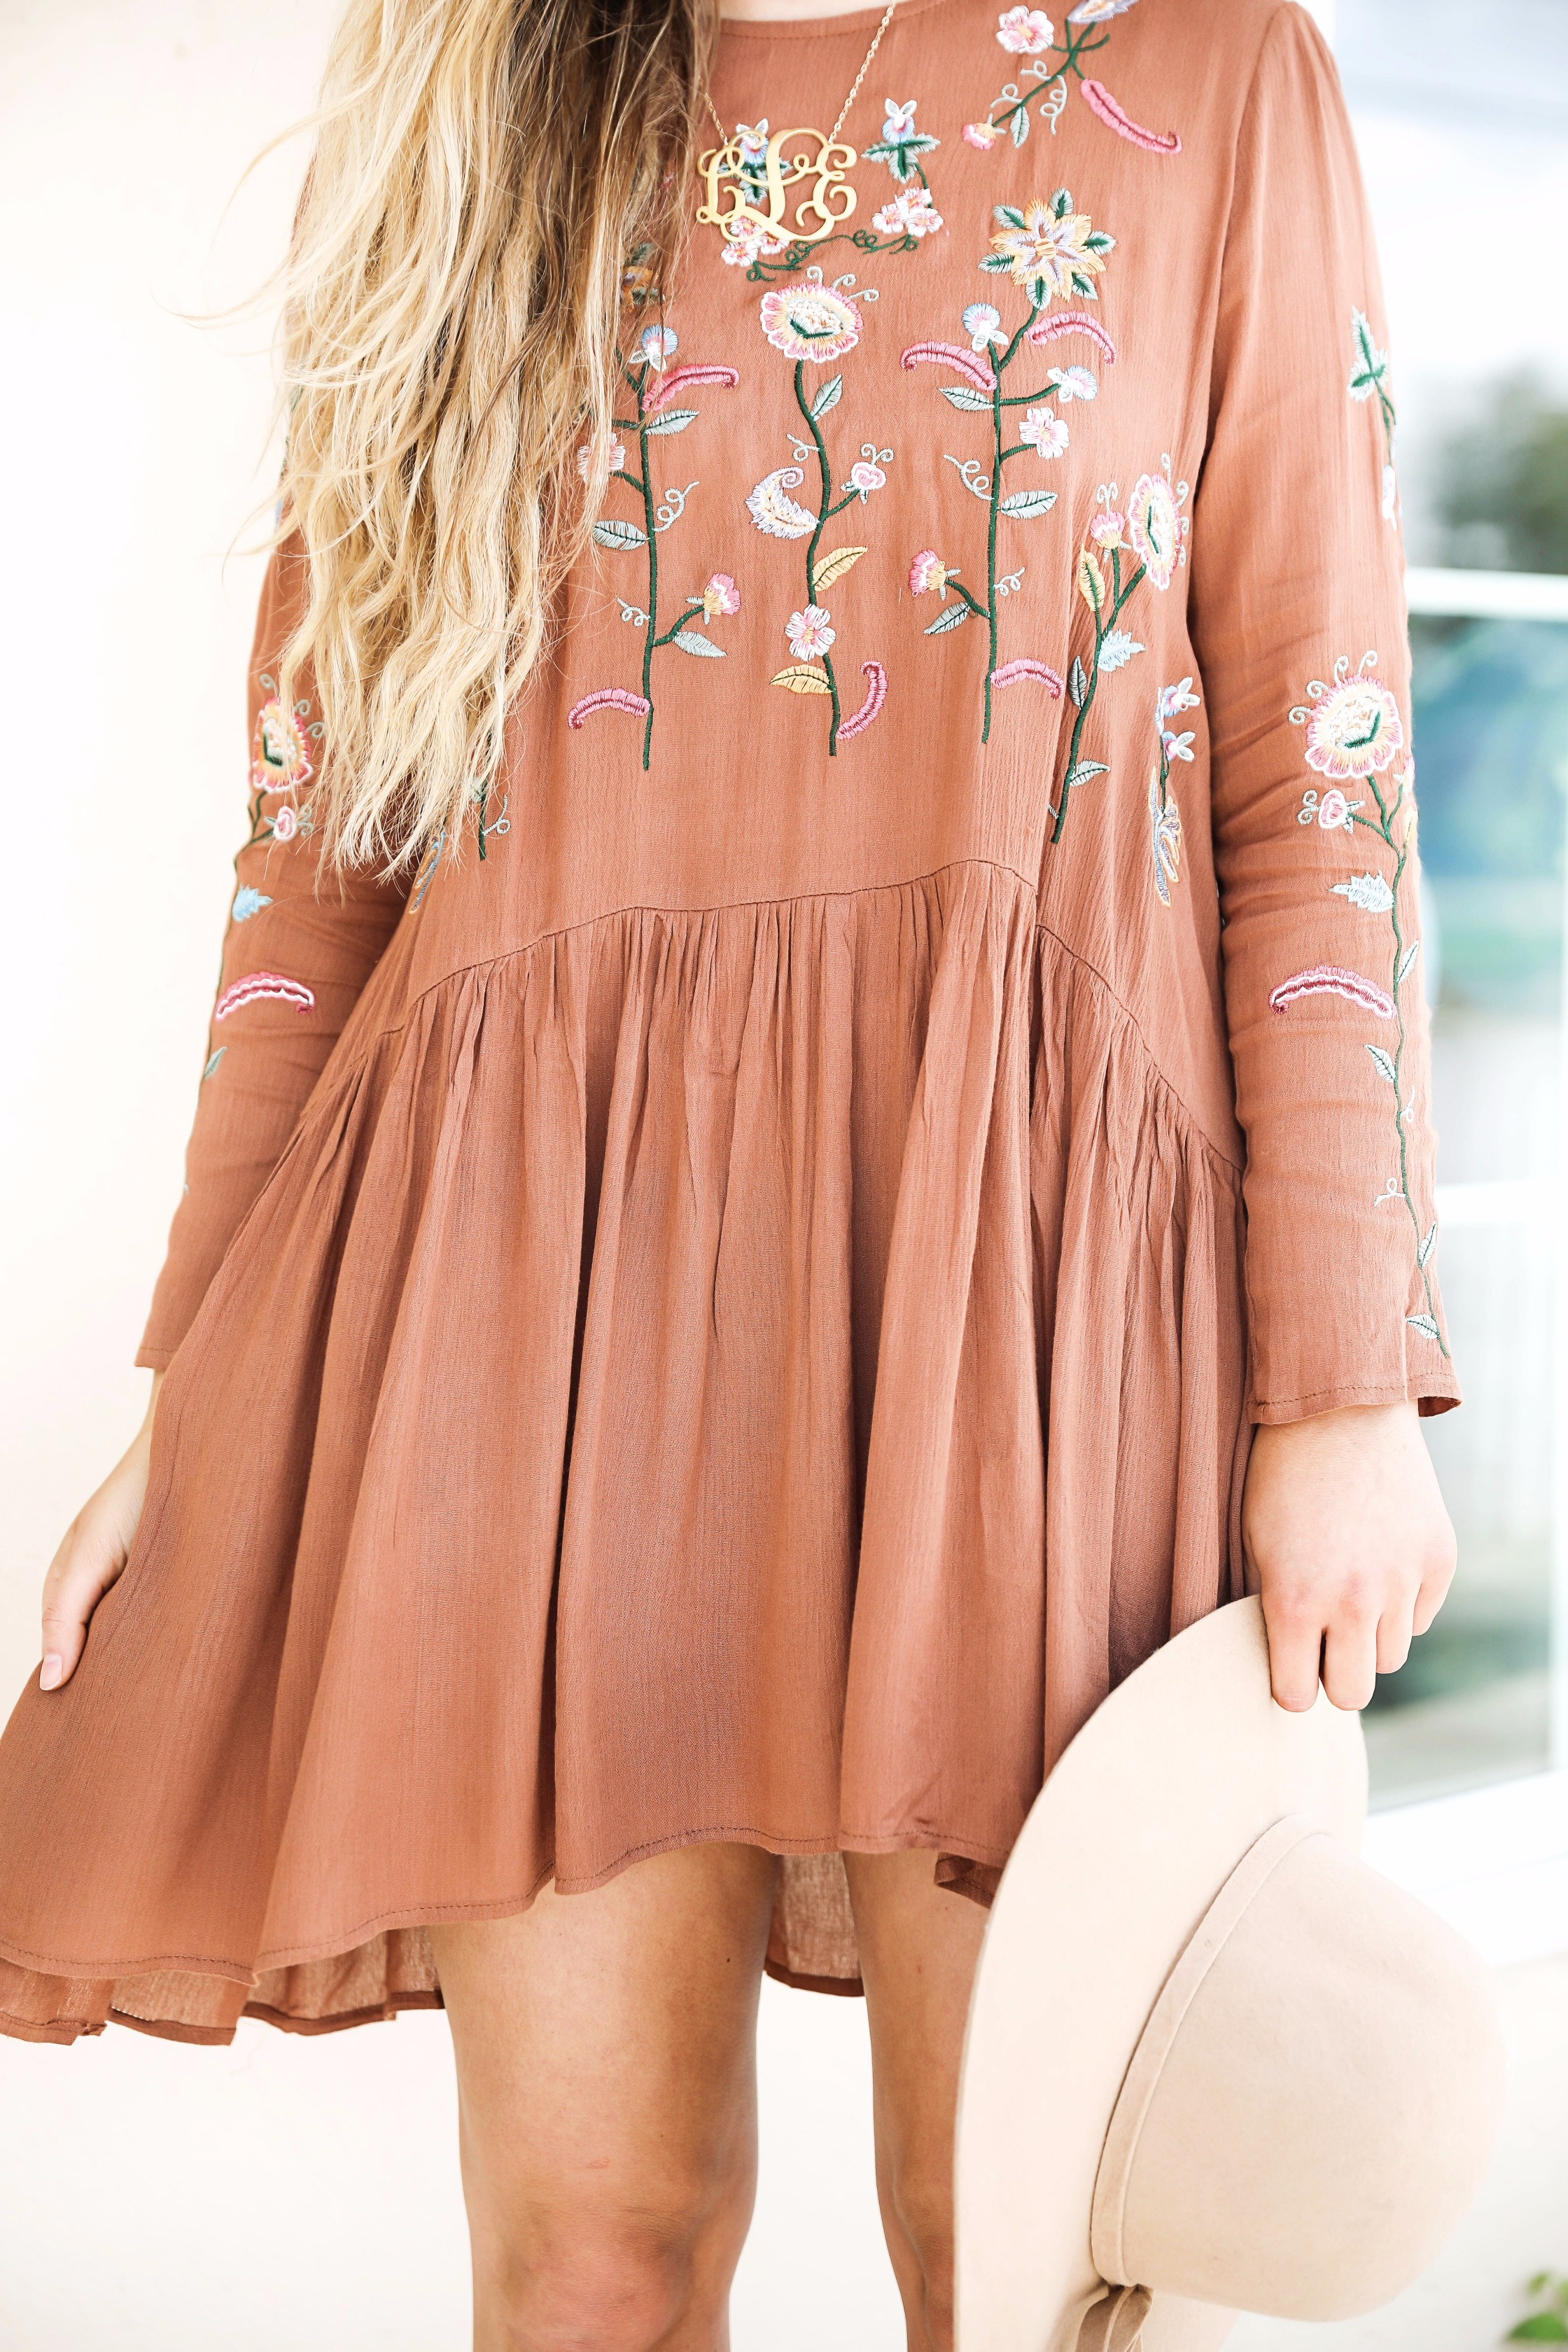 Embroidered dress for fall! I love the cute fall color of the dress too! This outfit is super cute for the fall months! By fashion blogger lauren lindmark on daily dose of charm